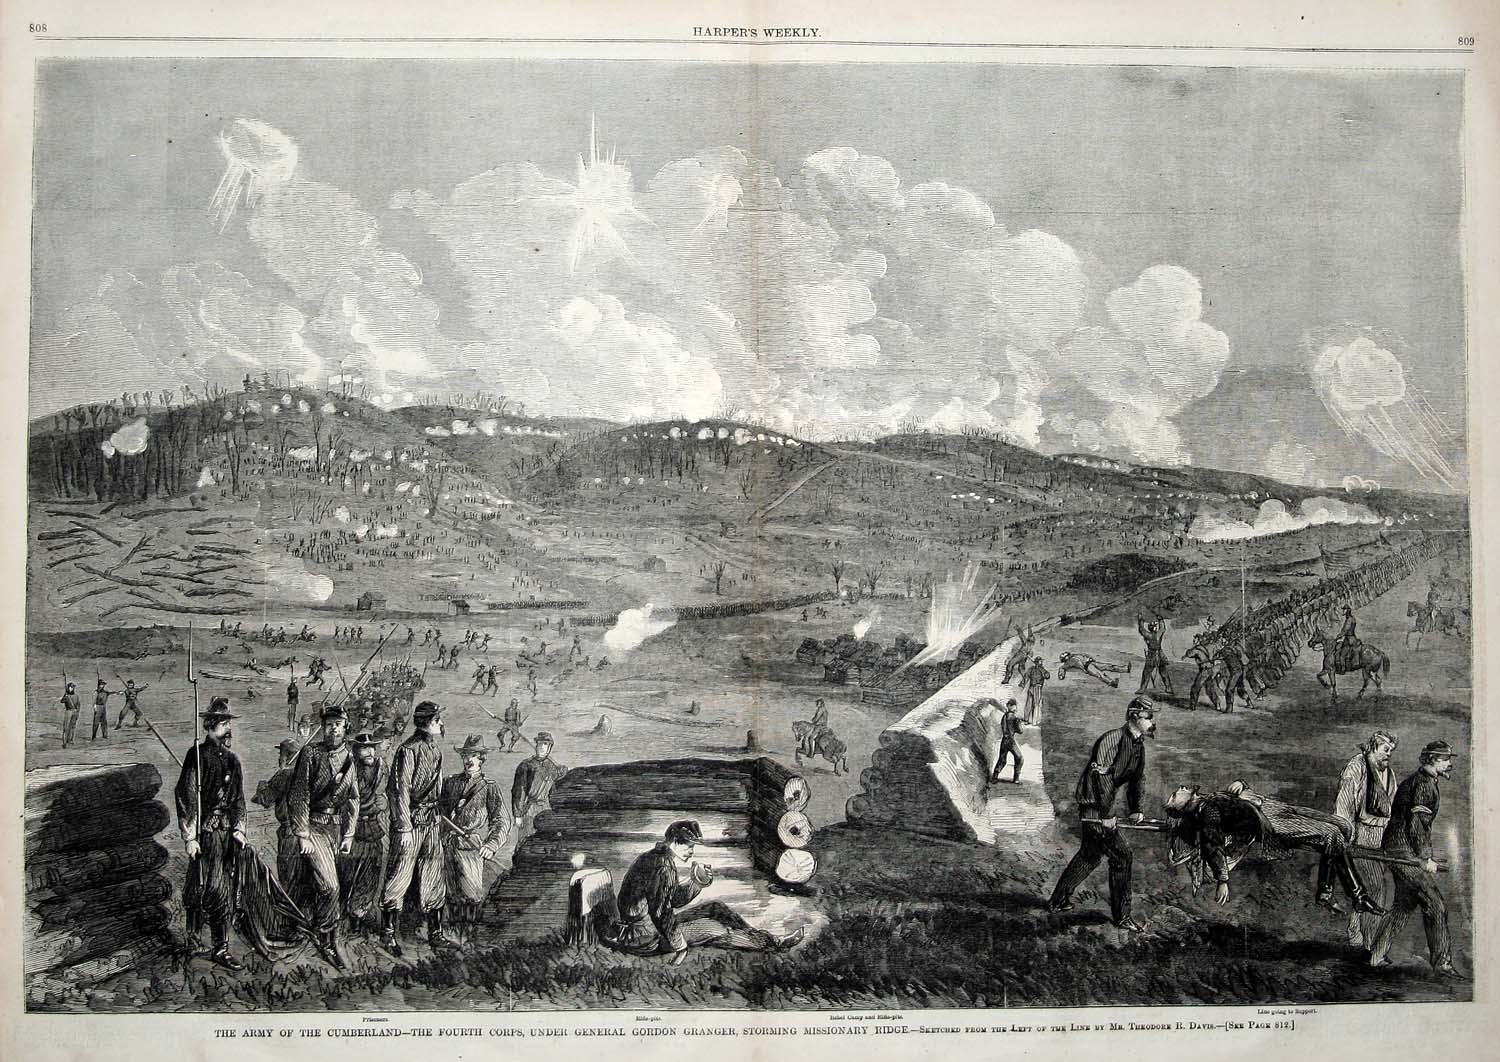 battle of chattanooga The battle for chattanooga was over, and union forces controlled the town that general sherman would use as his supply base for his march to atlanta and the sea the next spring flag of the 41st regiment, mississippi infantry.